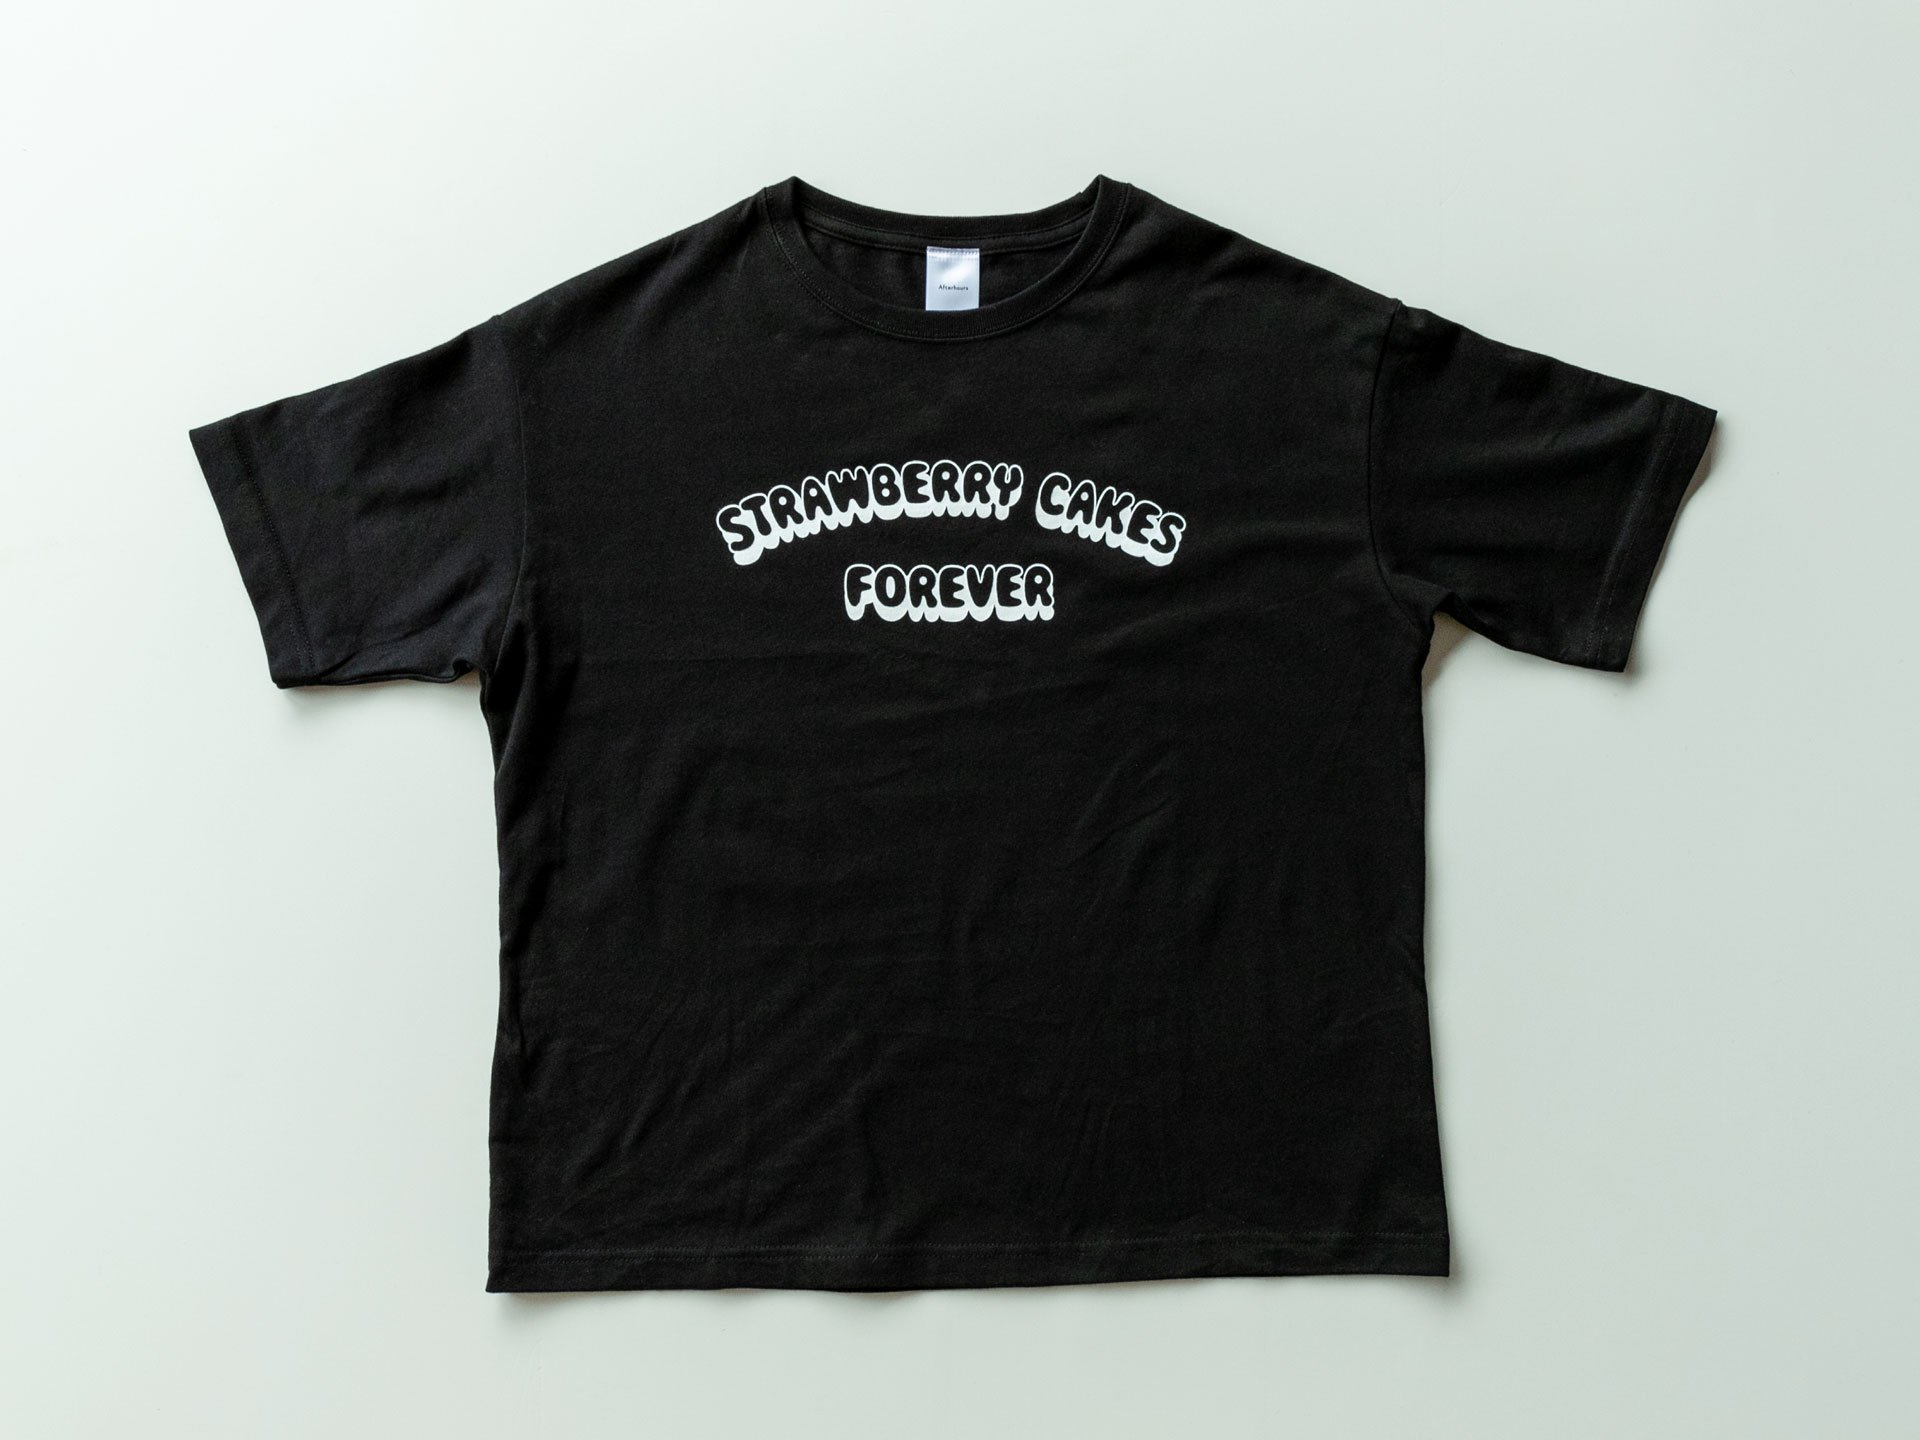 T-Shirt「STRAWBERRY CAKES FOREVER」<img class='new_mark_img2' src='https://img.shop-pro.jp/img/new/icons8.gif' style='border:none;display:inline;margin:0px;padding:0px;width:auto;' />